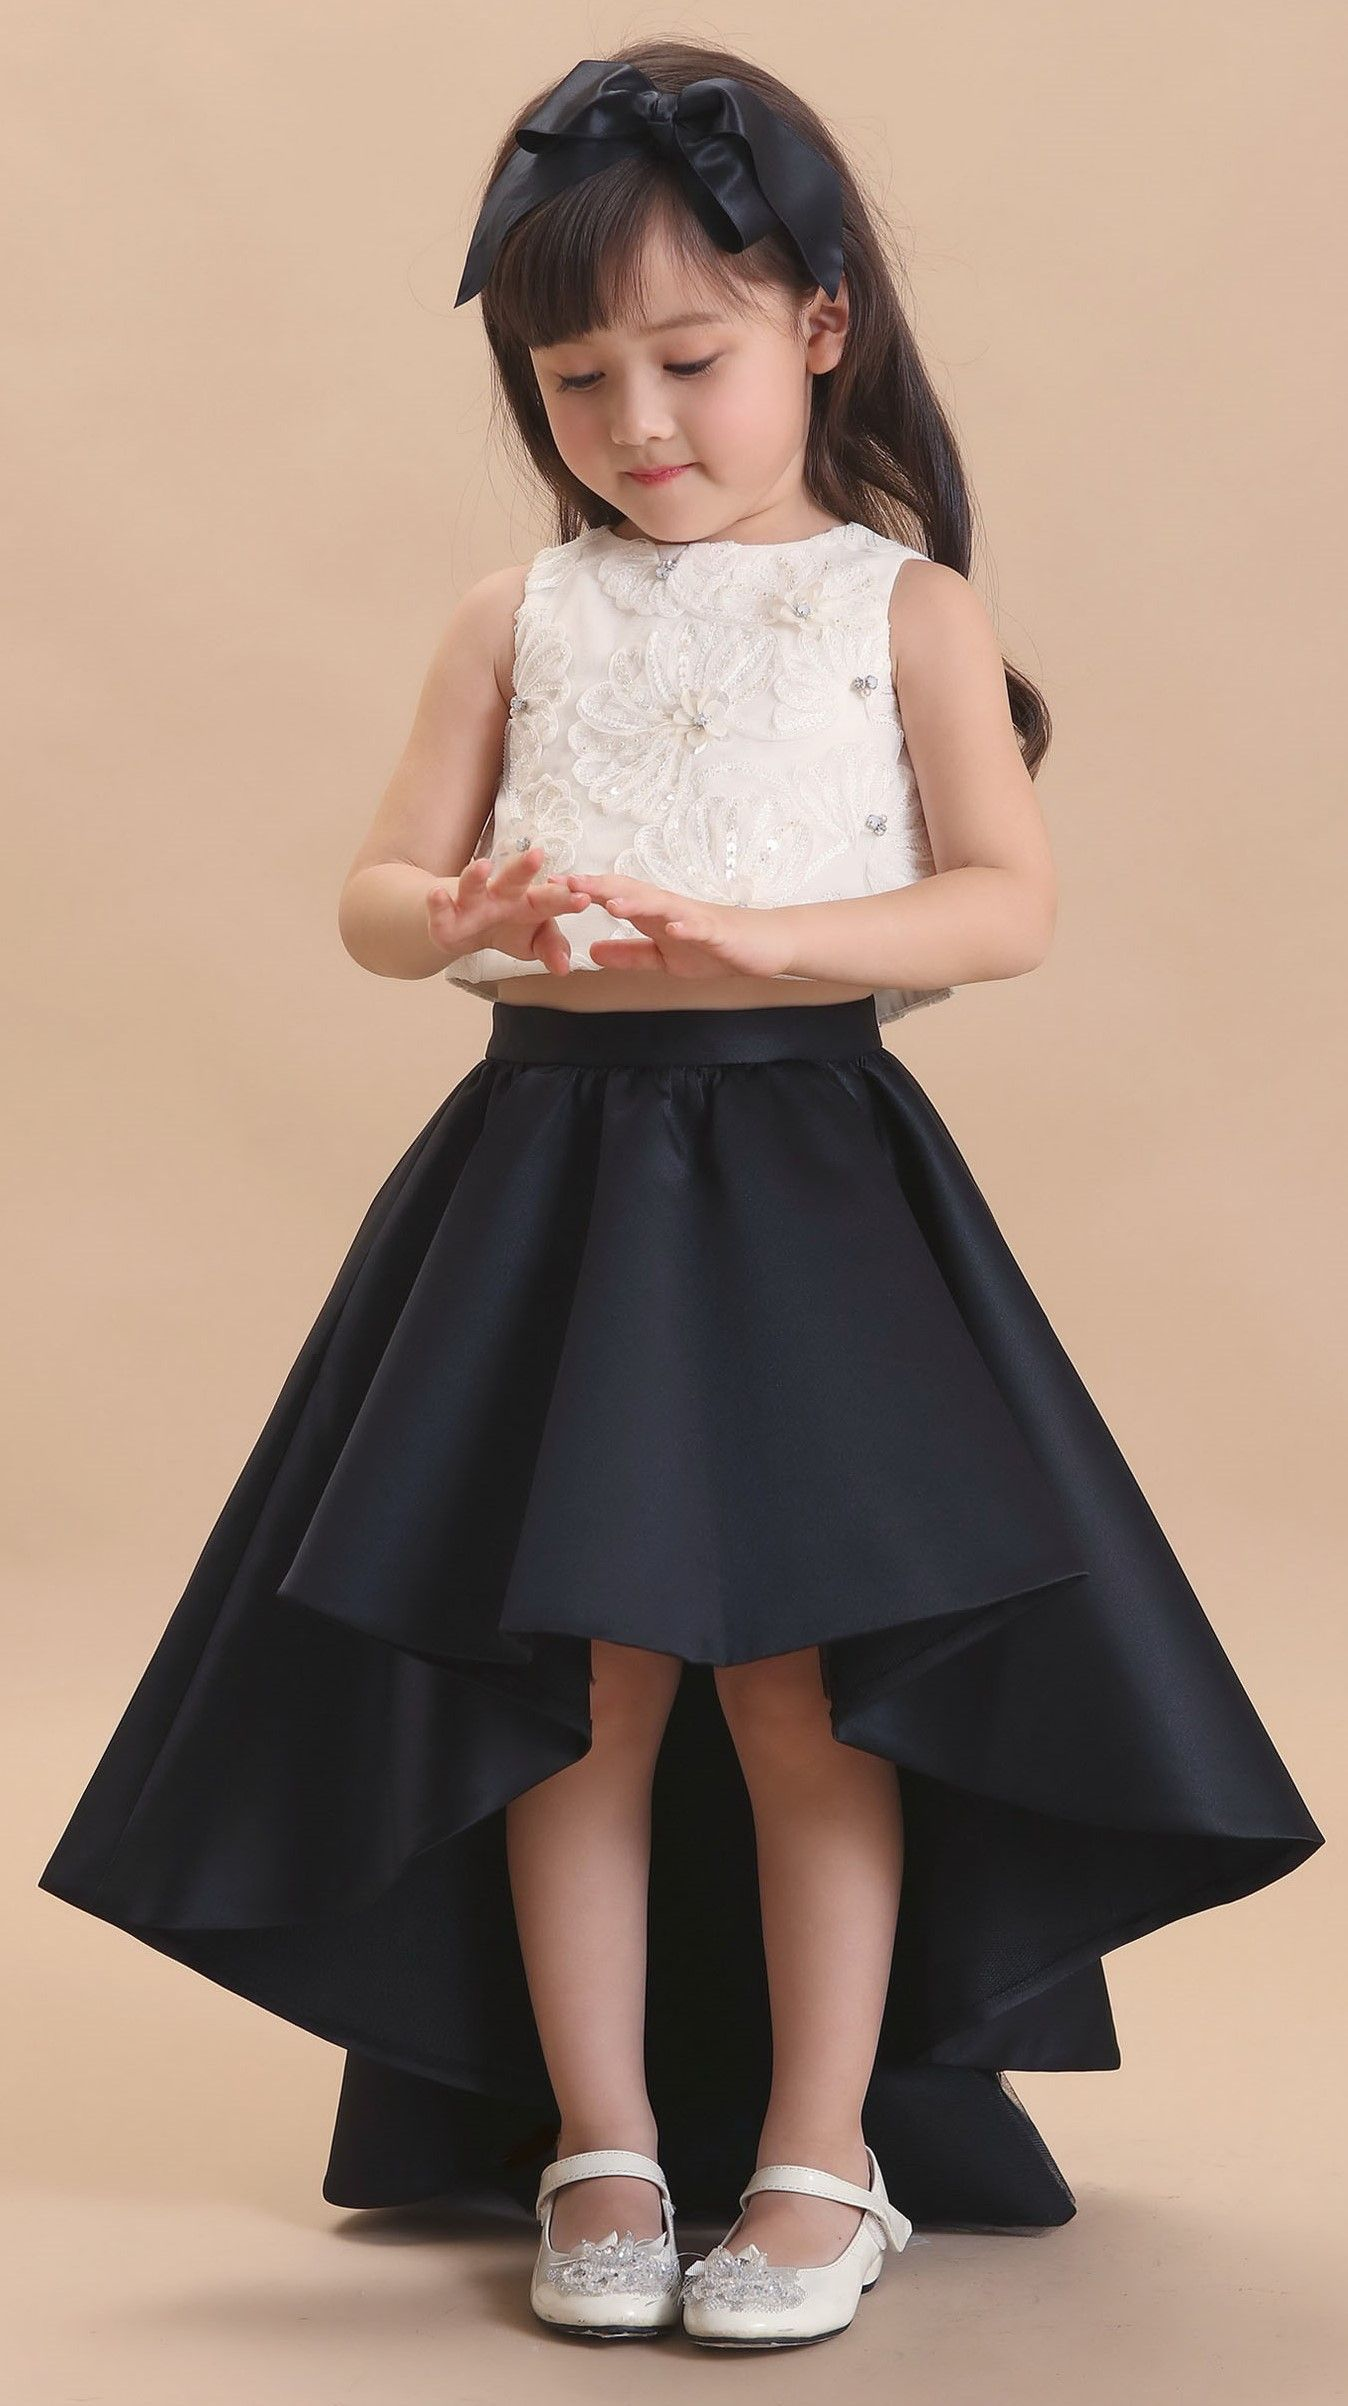 2b54986d5e9b DORIAN HO Baby Doll FW 17/18 | Dresses in 2019 | Kids gown, Kids ...